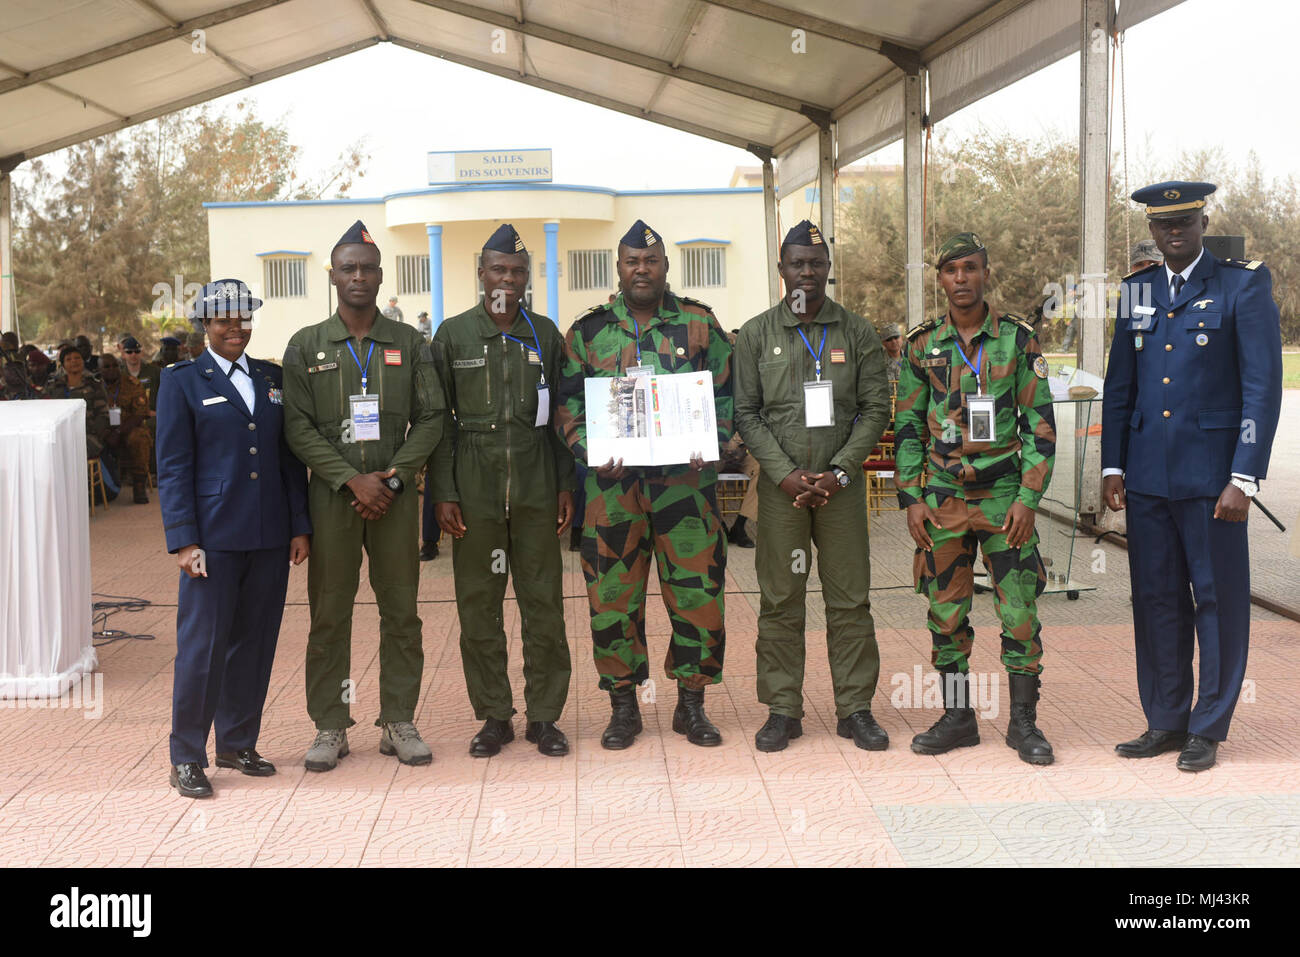 African Partnership Flight participants from Côte d'Ivoire pose for a photo after the closing ceremony for APF at Captain Andalla Cissé Air Base, Senegal, March 23, 2018. The purpose of APF Senegal is to conduct multilateral, military-to-military engagements and security assistance with African air forces. (U.S. Air Force Image collection celebrating the bravery dedication commitment and sacrifice of U.S. Armed Forces and civilian personnel. - Stock Image